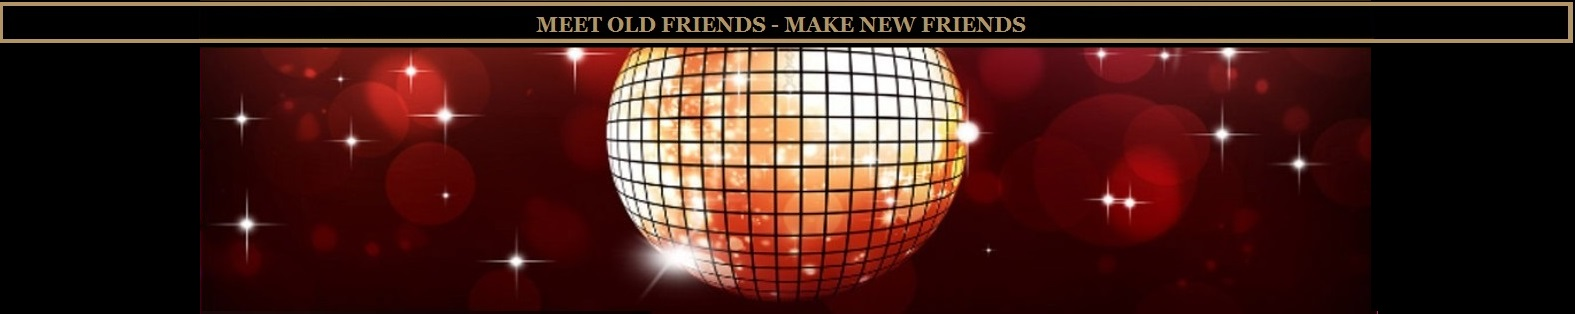 mingles-make-new-friends-opening-slide-1